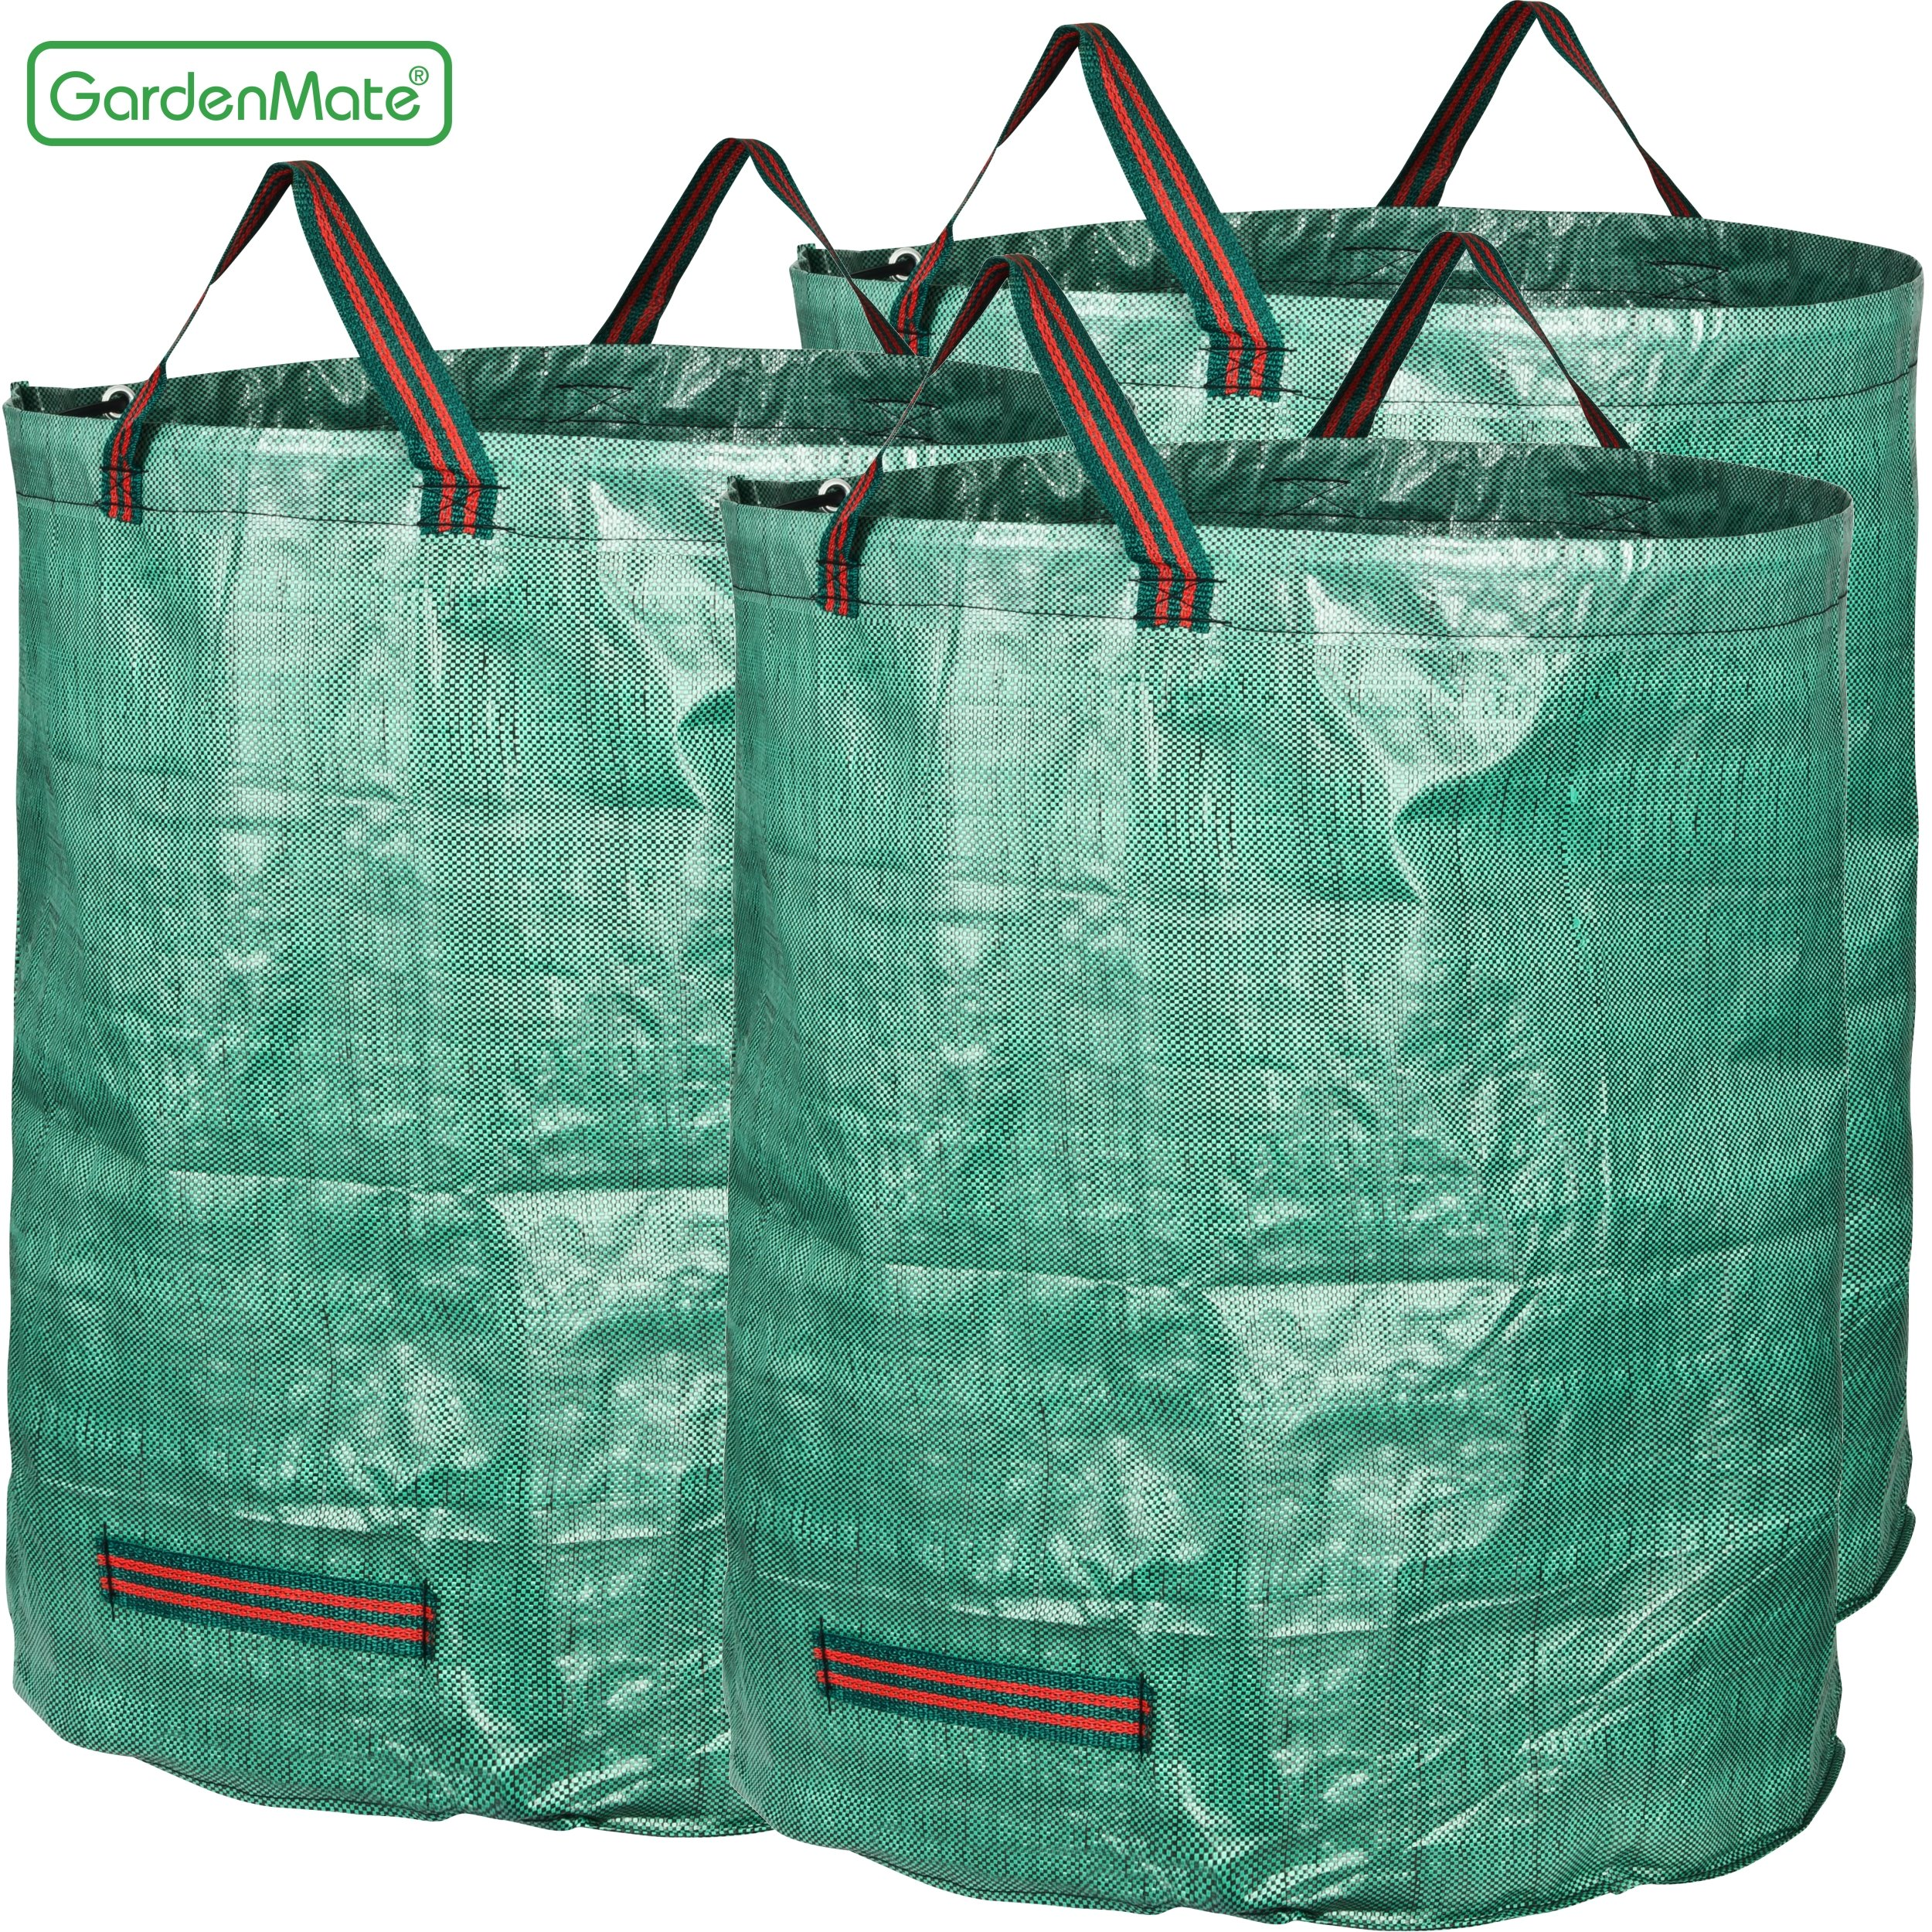 GardenMate 3-Pack 72 Gallons Garden Waste Bags by GardenMate